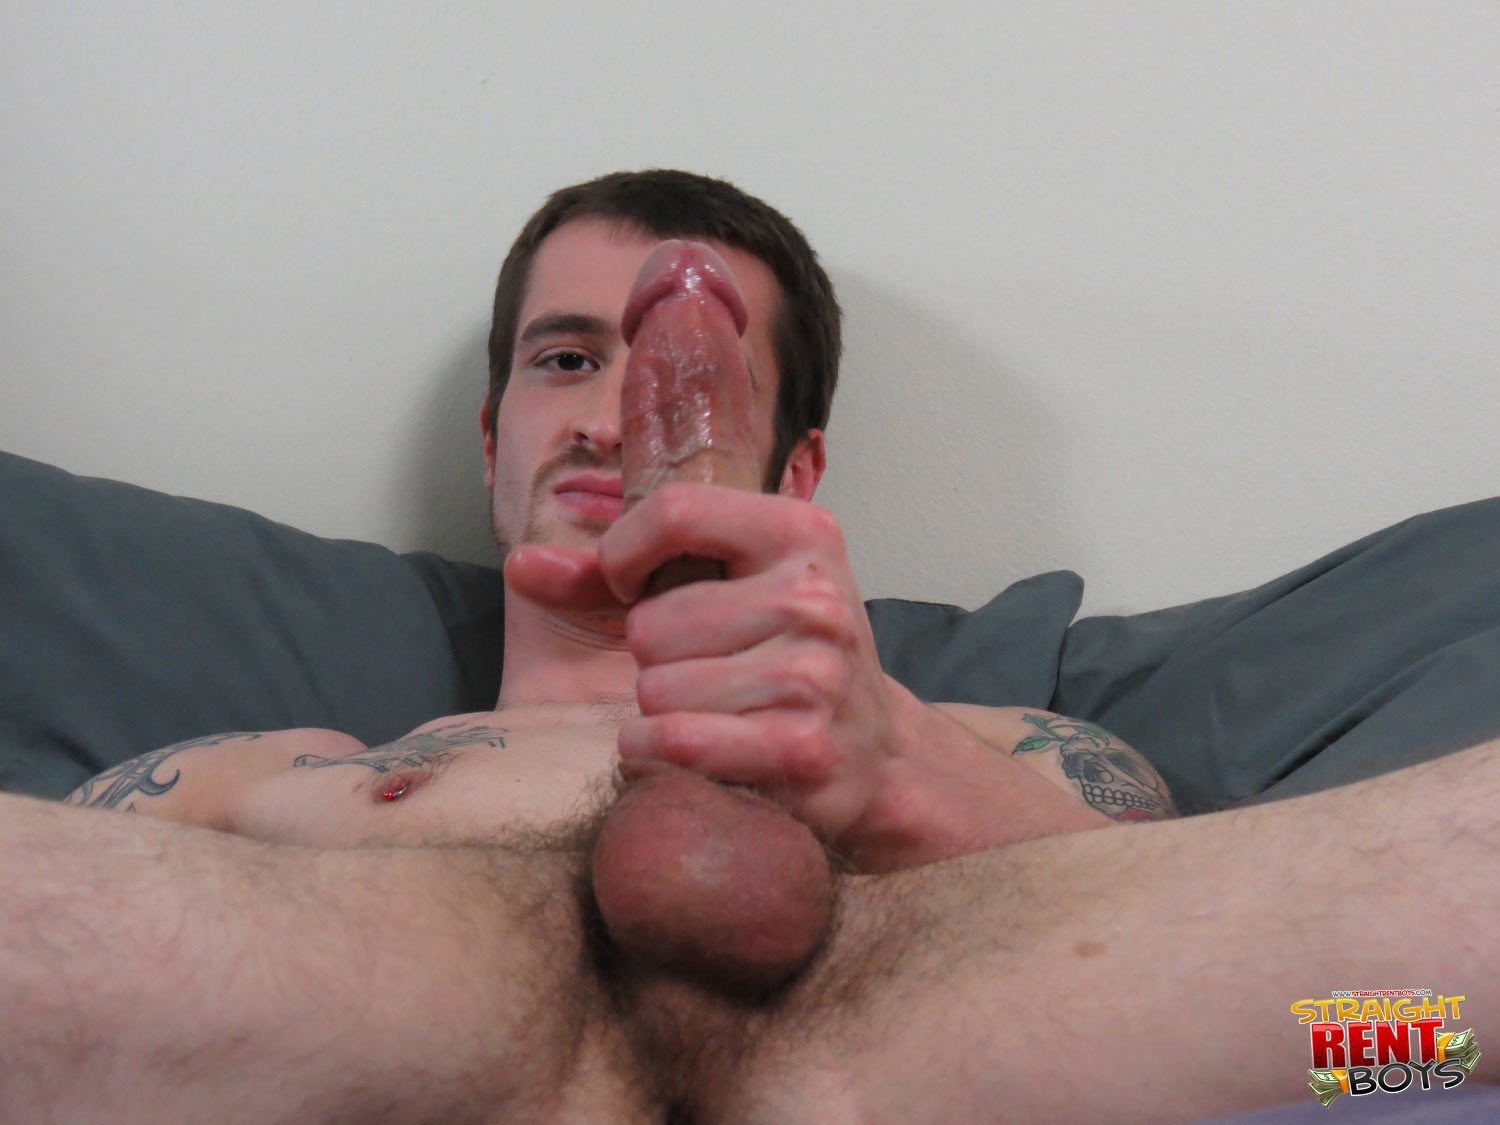 Straight Rent Boys Jake 21 year old with Huge Cock Jerk Off 10 Amateur Straight Rent Boy Gets $200 To Jerk His Huge Cock